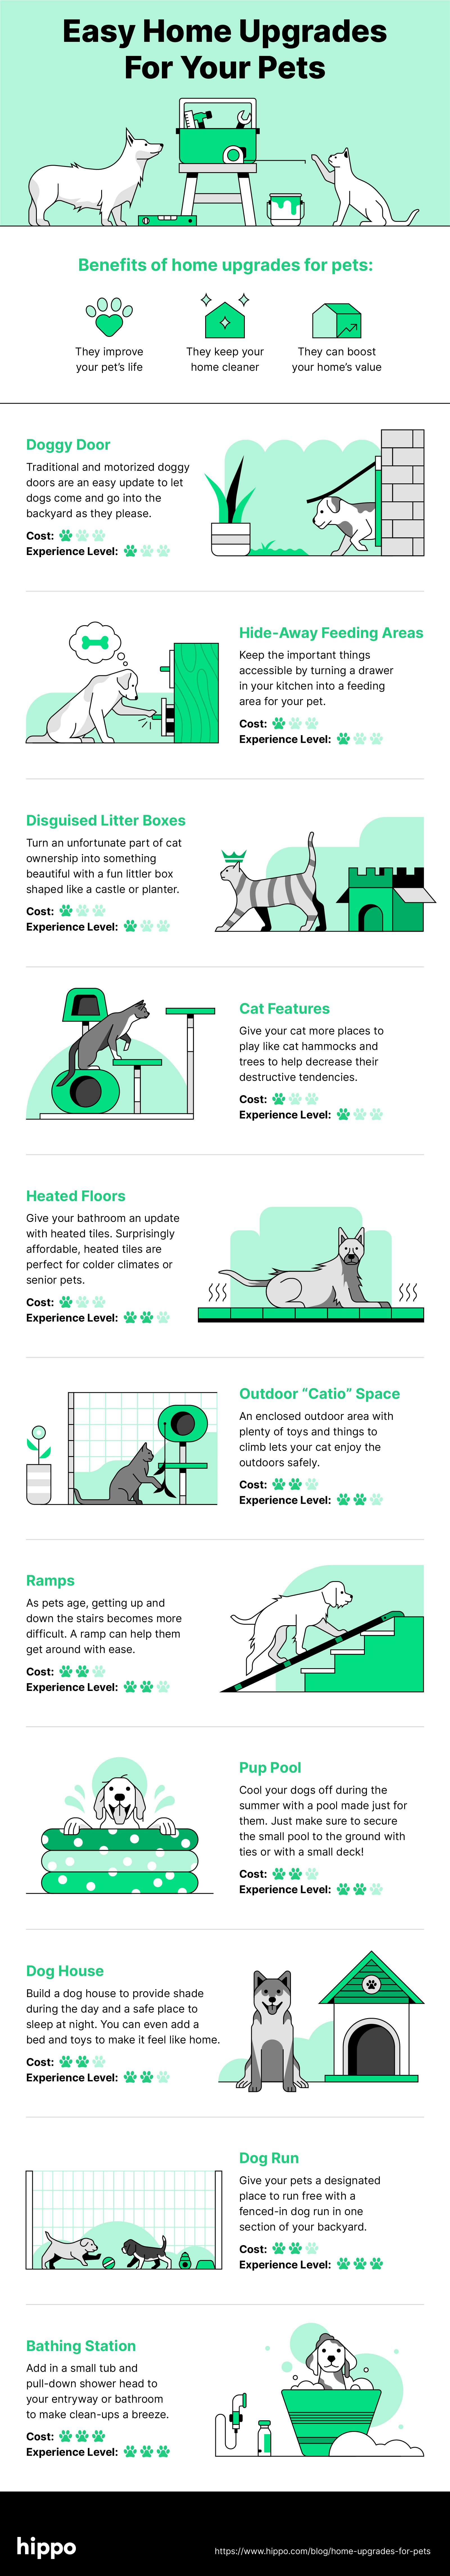 Illustrations of dogs and cats describing each home upgrade